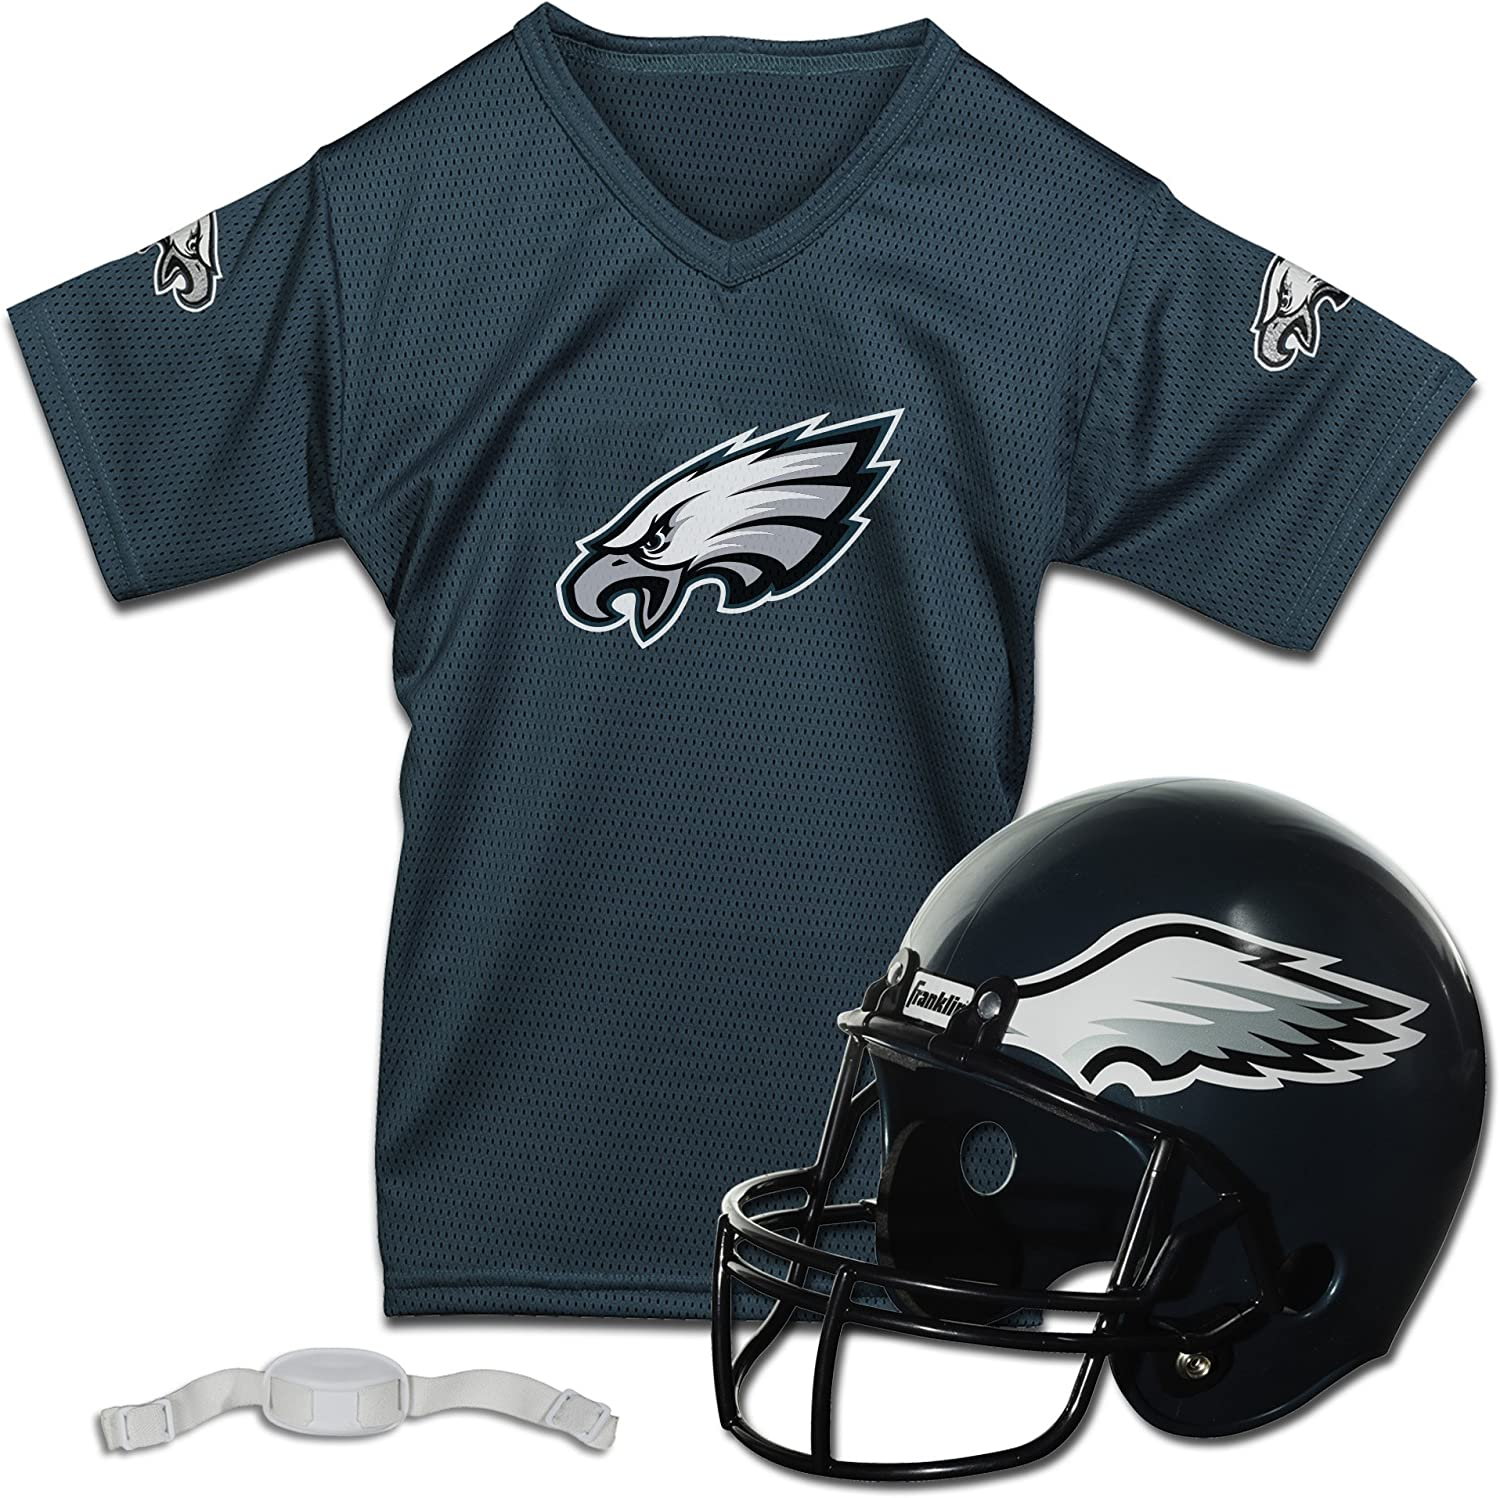 Franklin Sports Philadelphia Eagles Kids Football Helmet and Jersey Set - NFL Youth Football Uniform Costume - Helmet, Jersey, Chinstrap - Youth M